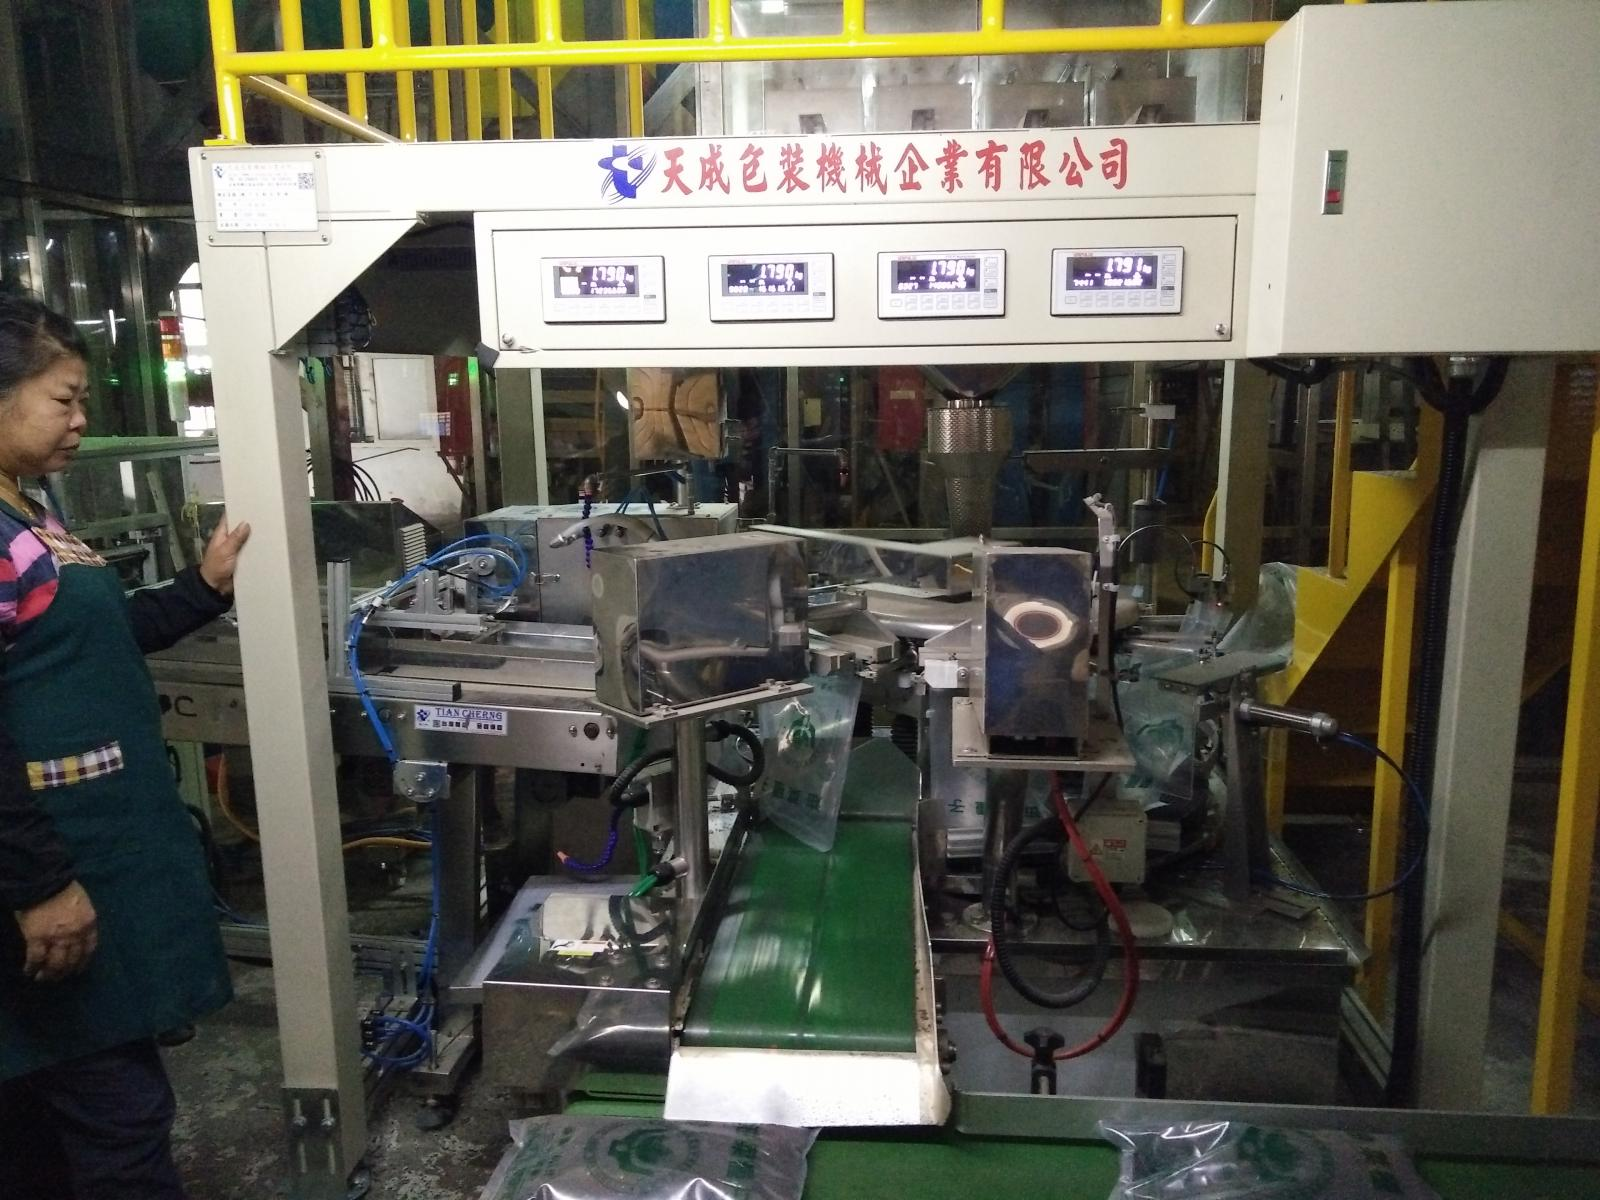 Automatic packaging system operation 1